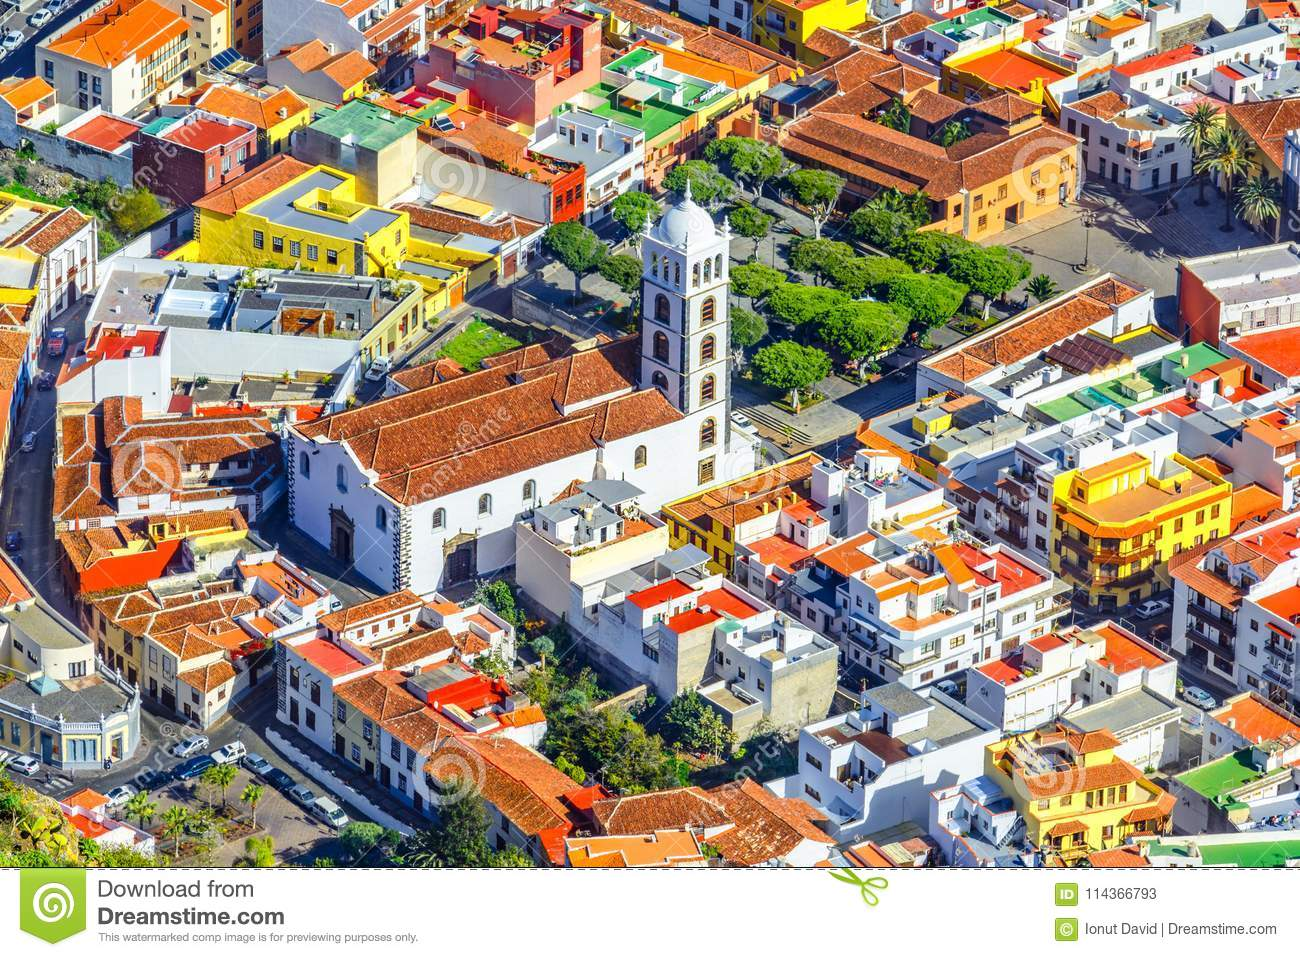 Tenerife, Canary islands, Spain: Overview of the beautiful town with Church of Santa Ana